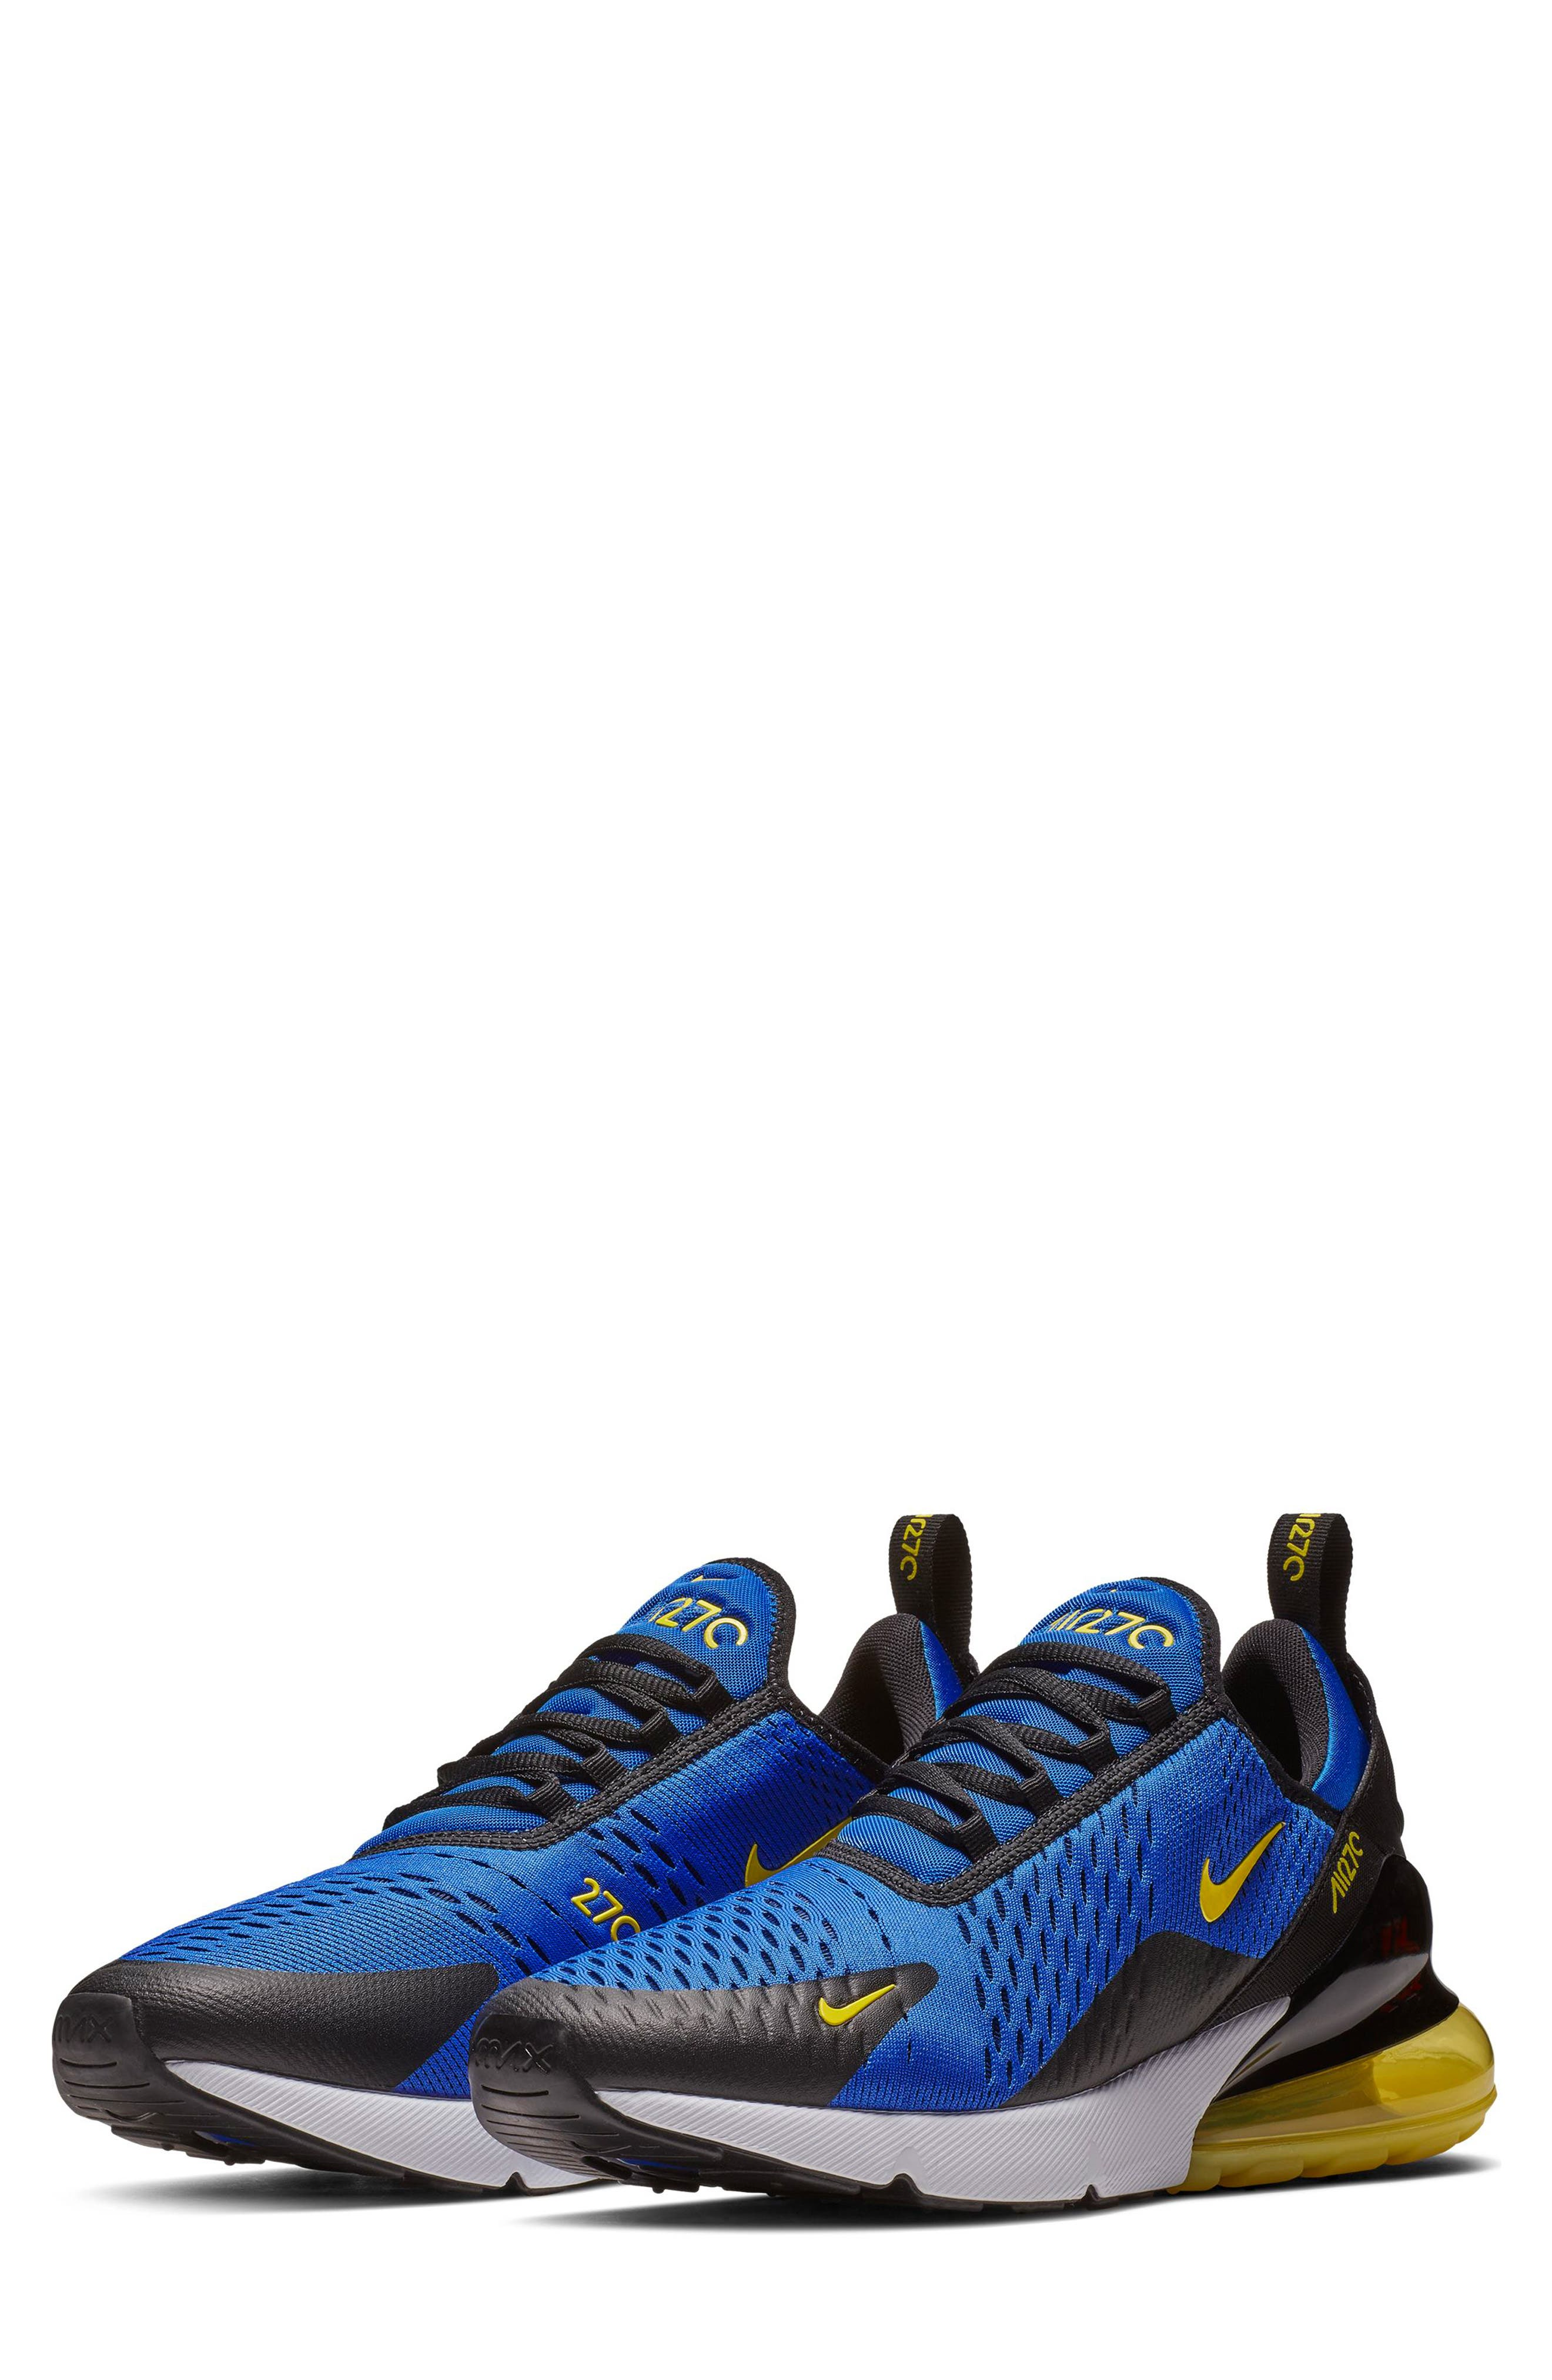 Air Max 270 Sneaker,                             Main thumbnail 1, color,                             GAME ROYAL/ WHITE/ BLACK